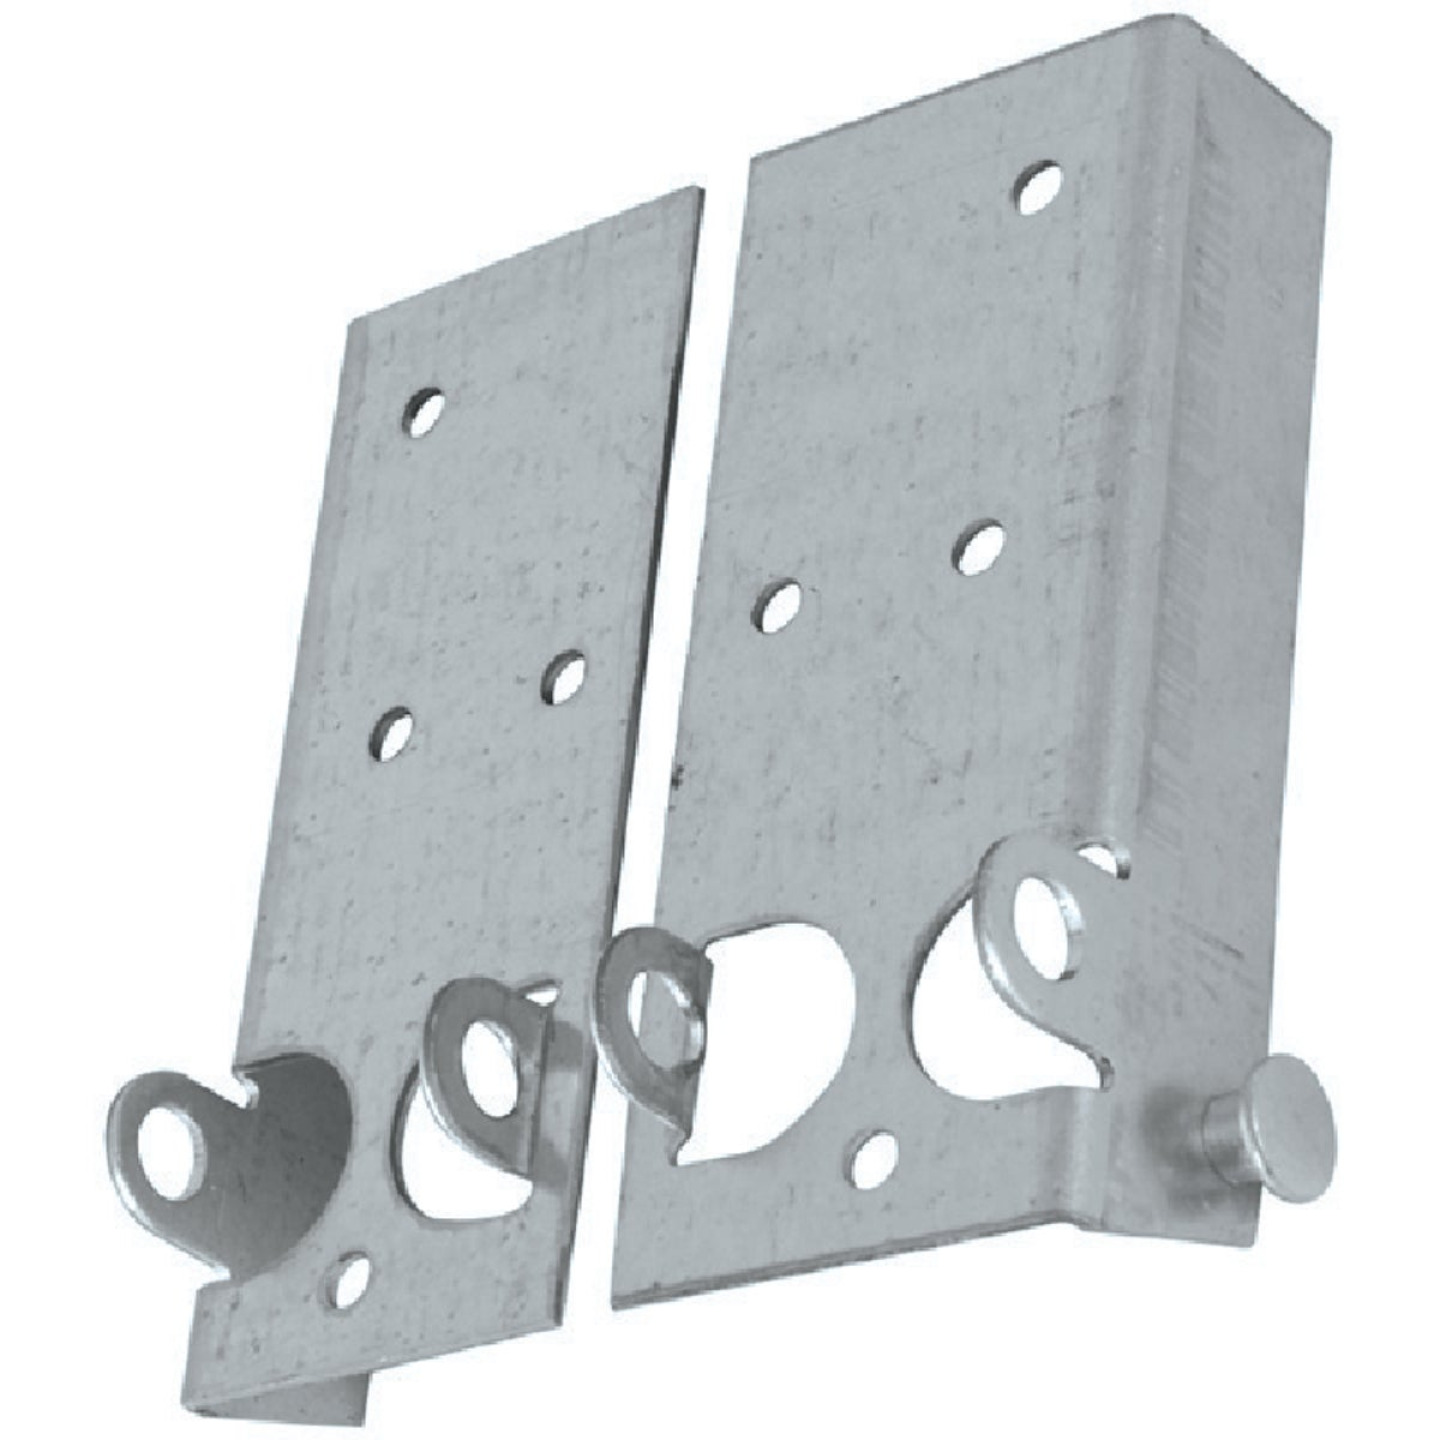 National Galvanized Steel Right & Left Hand Bottom Lift & Roller Bracket For Wood & Metal Garage Door Image 2